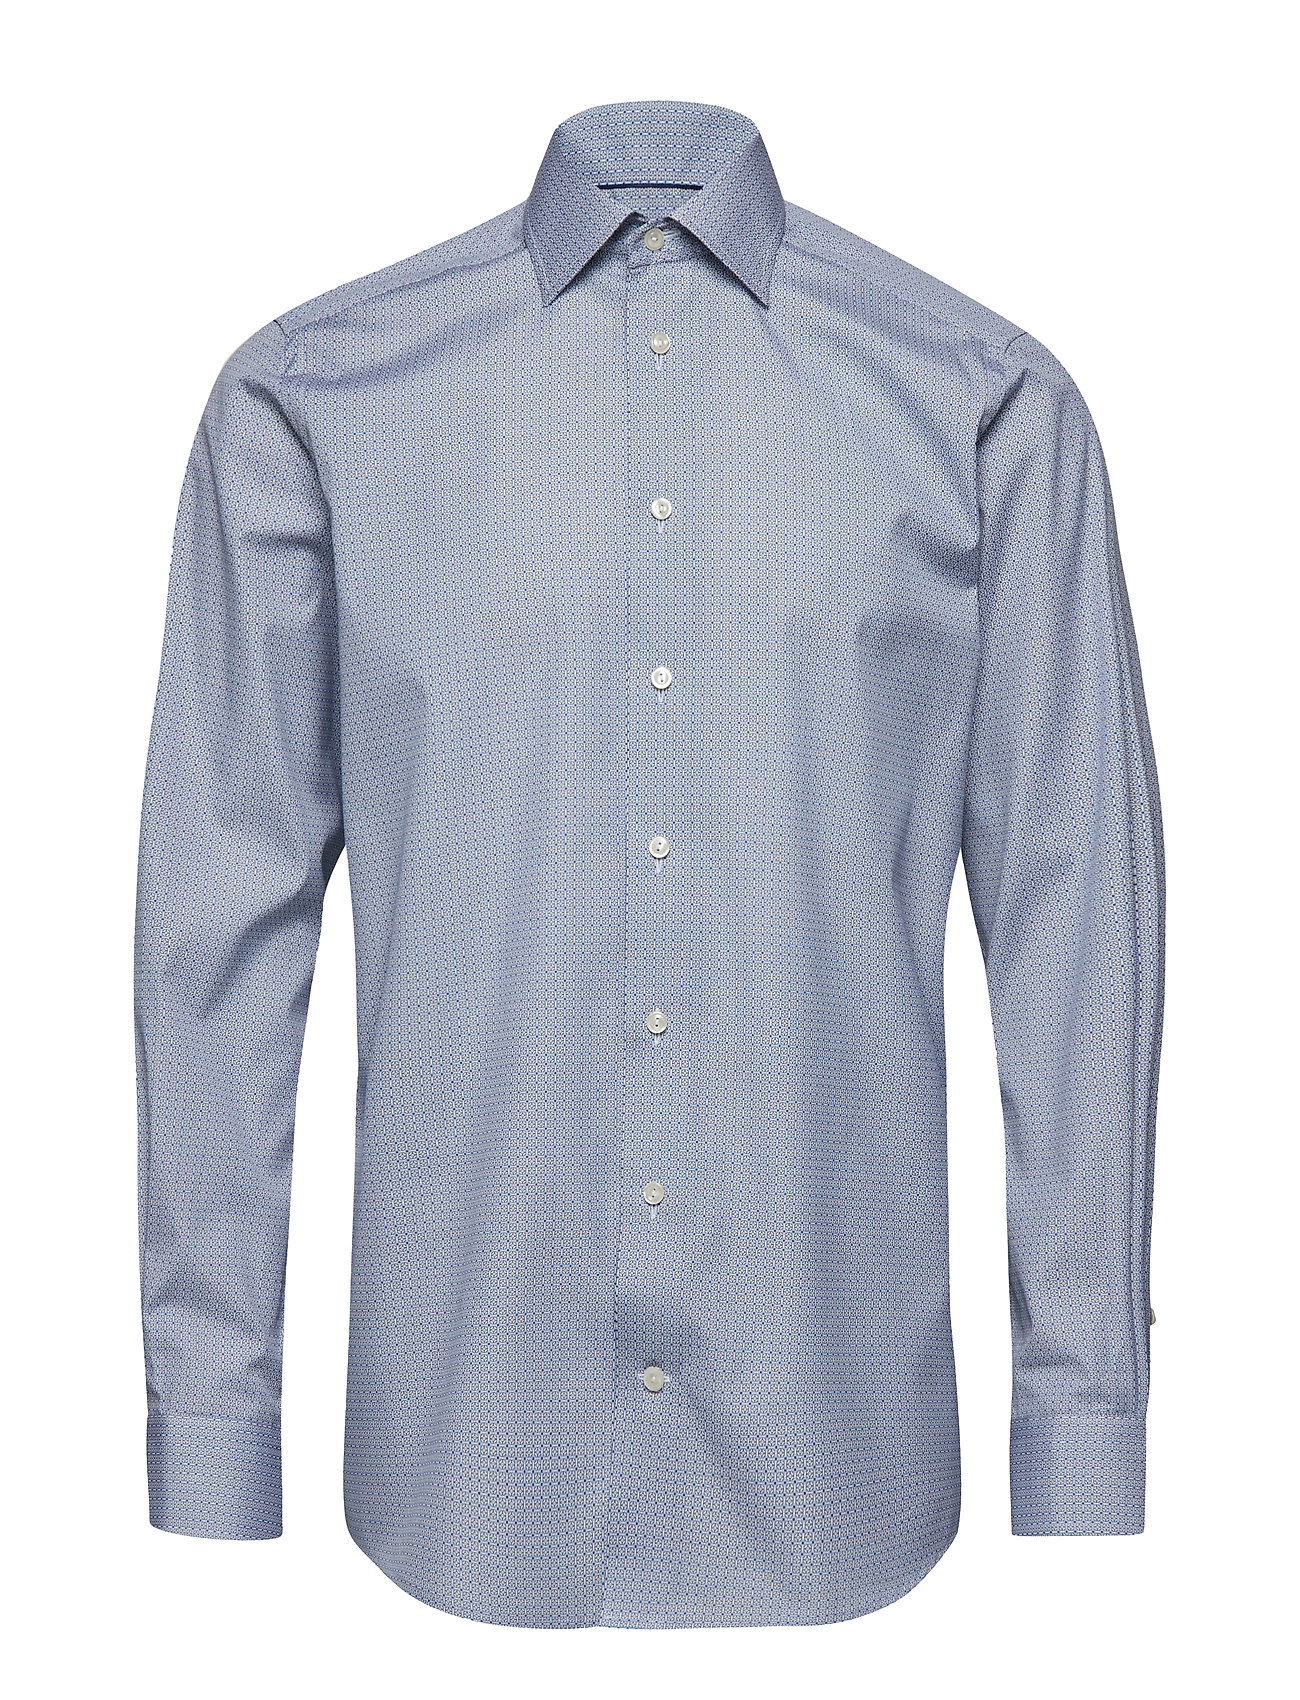 Eton Blue Mosaic Print Shirt - BLUE